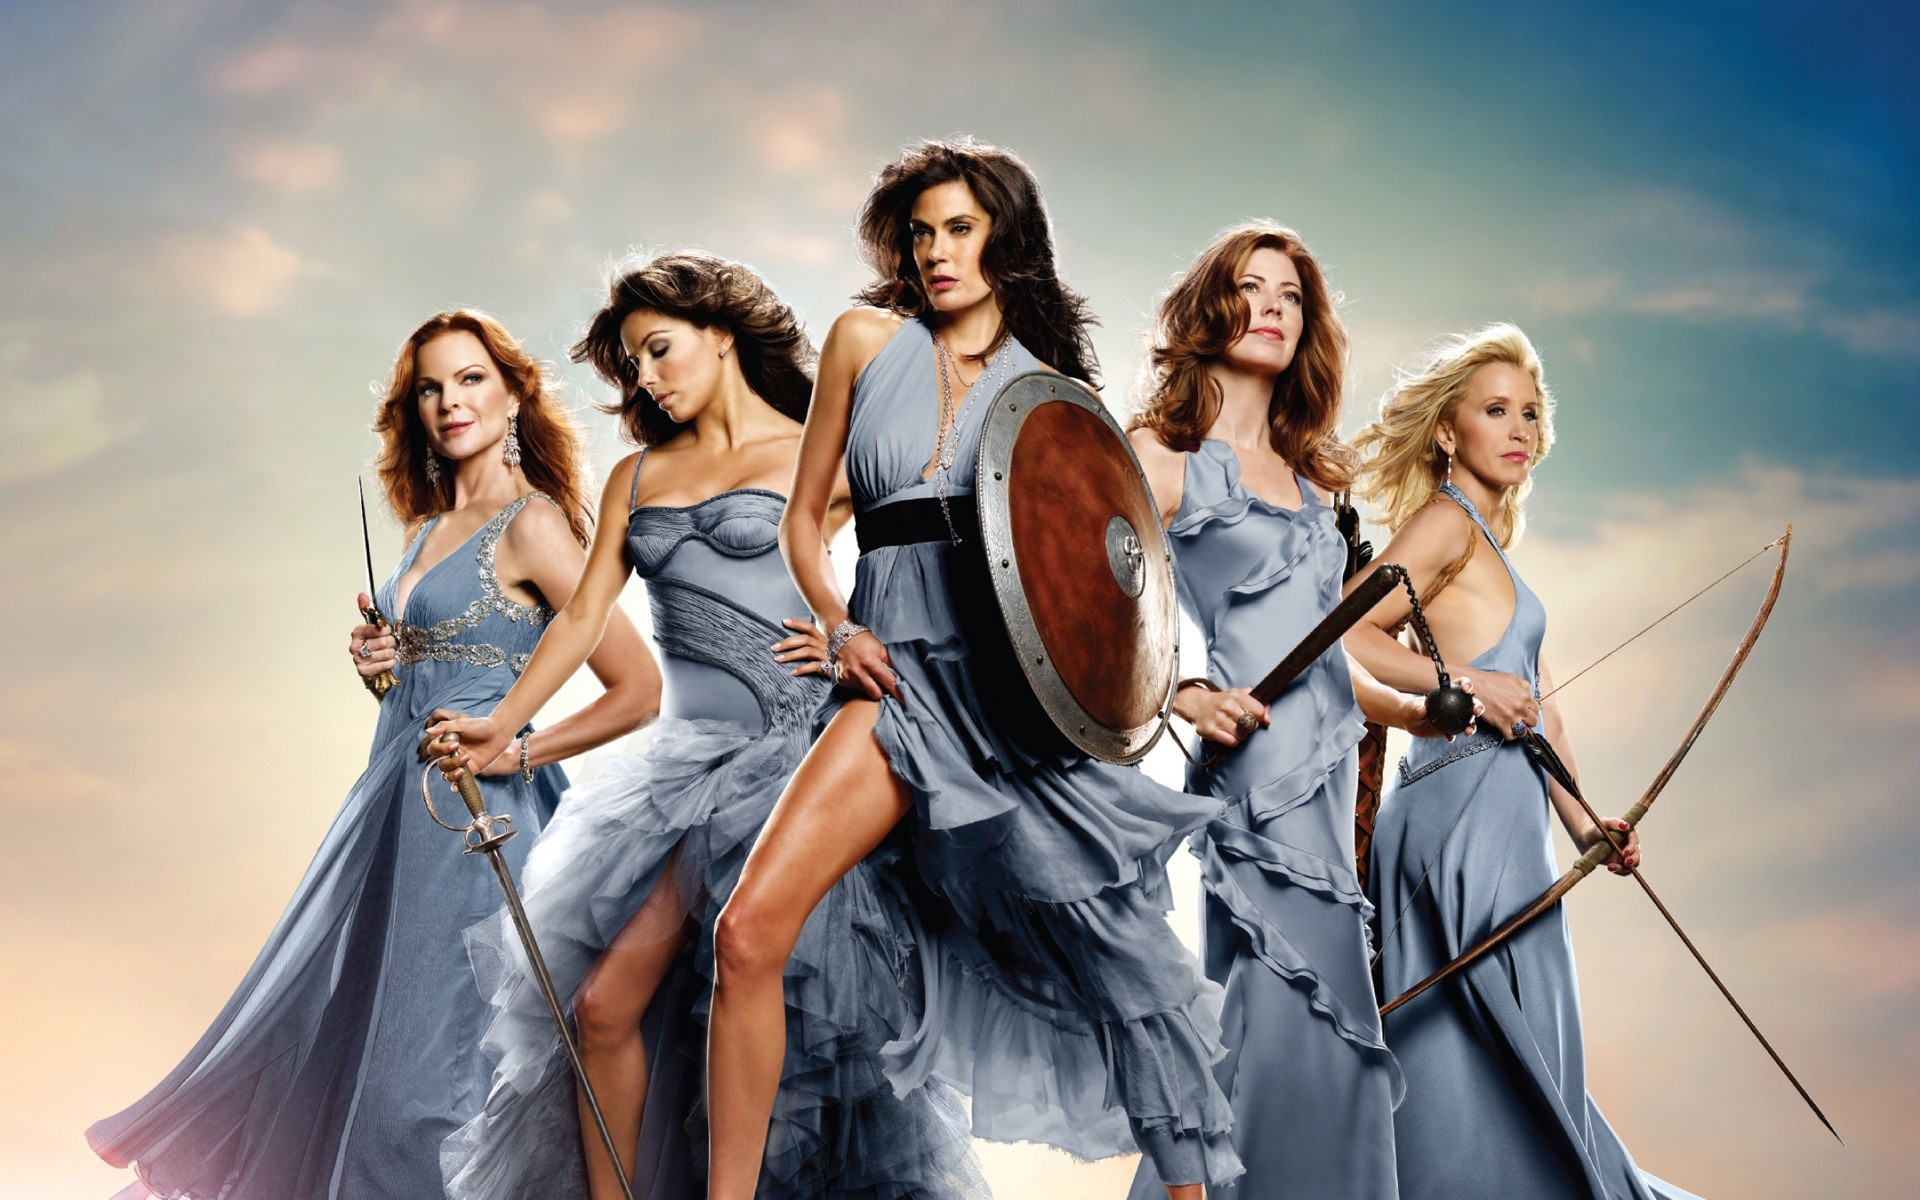 1000+ images about Desperate Housewives on Pinterest | Desperate …